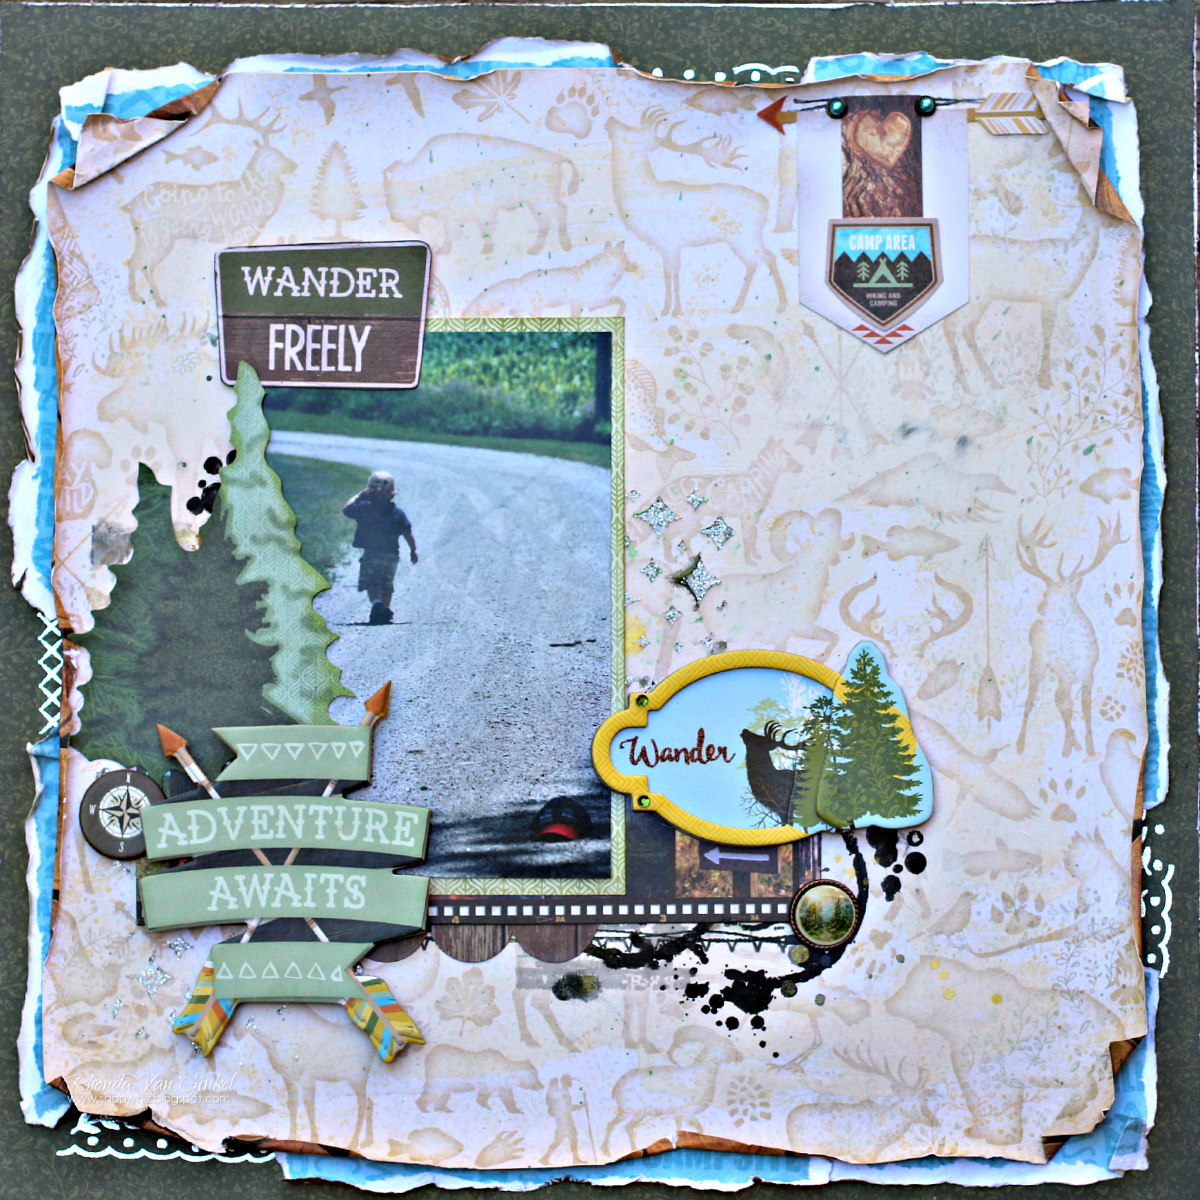 Scrapbook ideas adventure - Adventure Awaits Scrapbook Page Featuring Take A Hike Collection By Bobunny Designed By Rhonda Van Ginkel